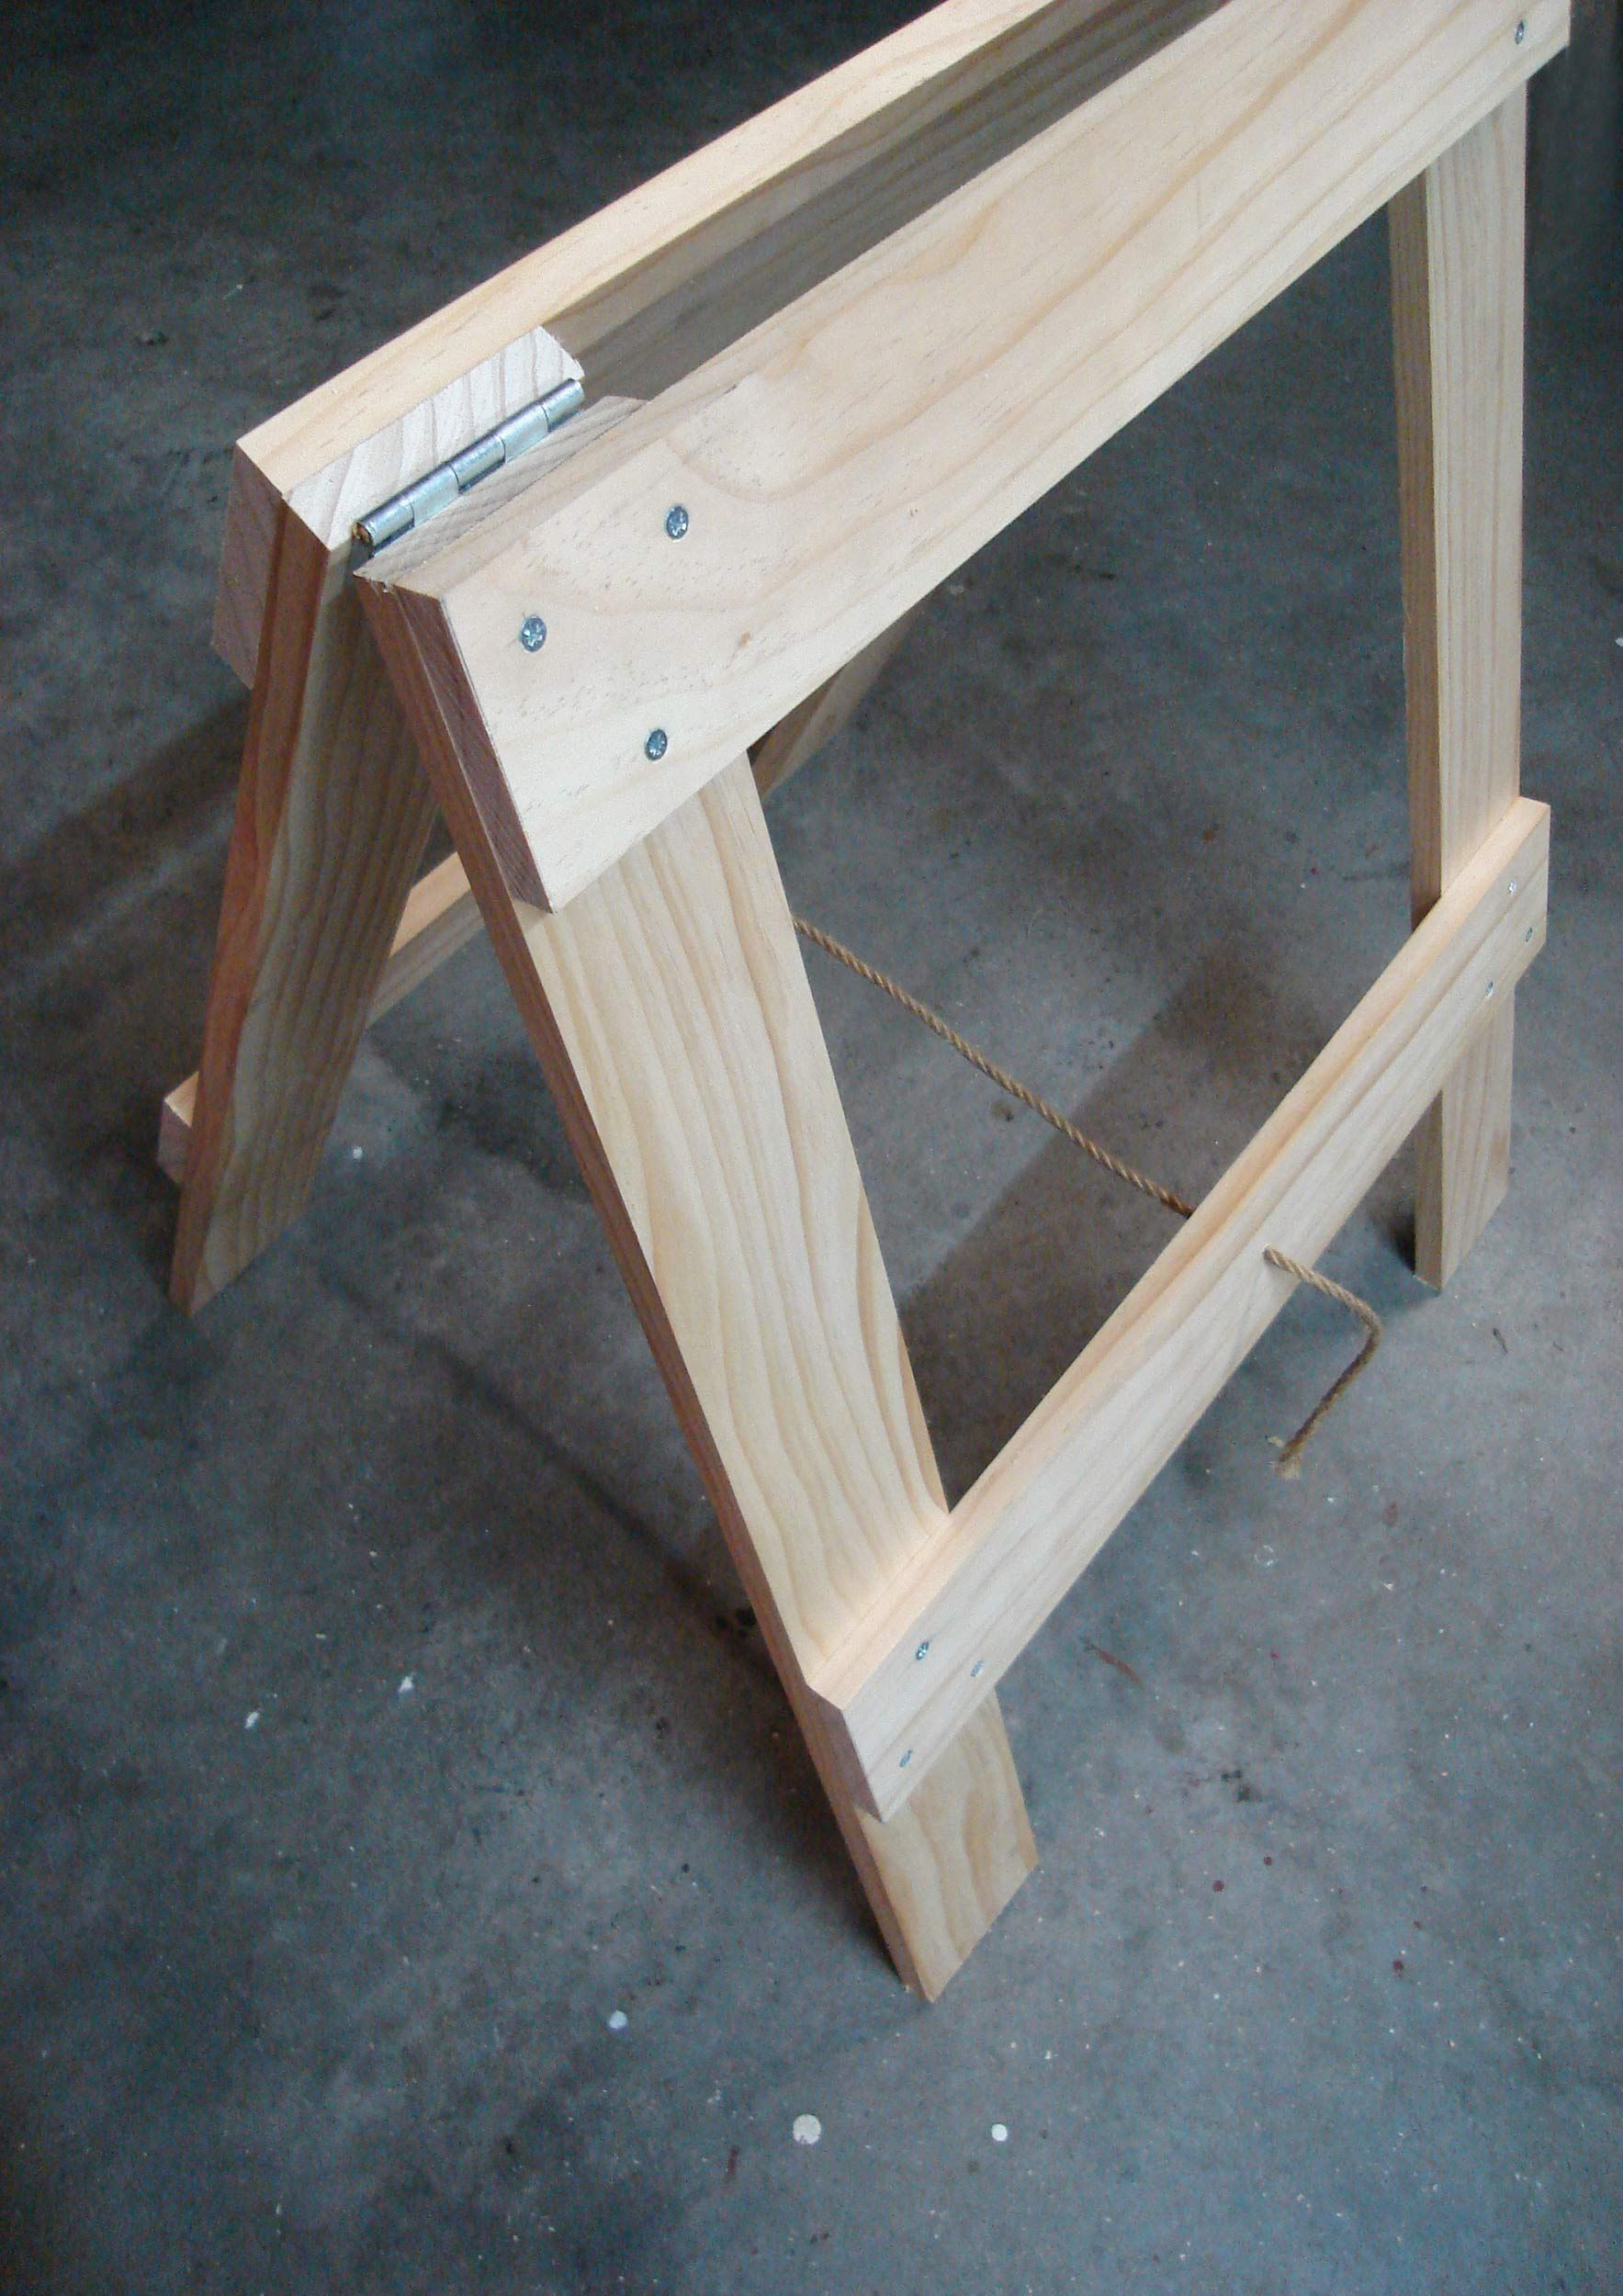 How to make a saw horse General BuildEazy Projects